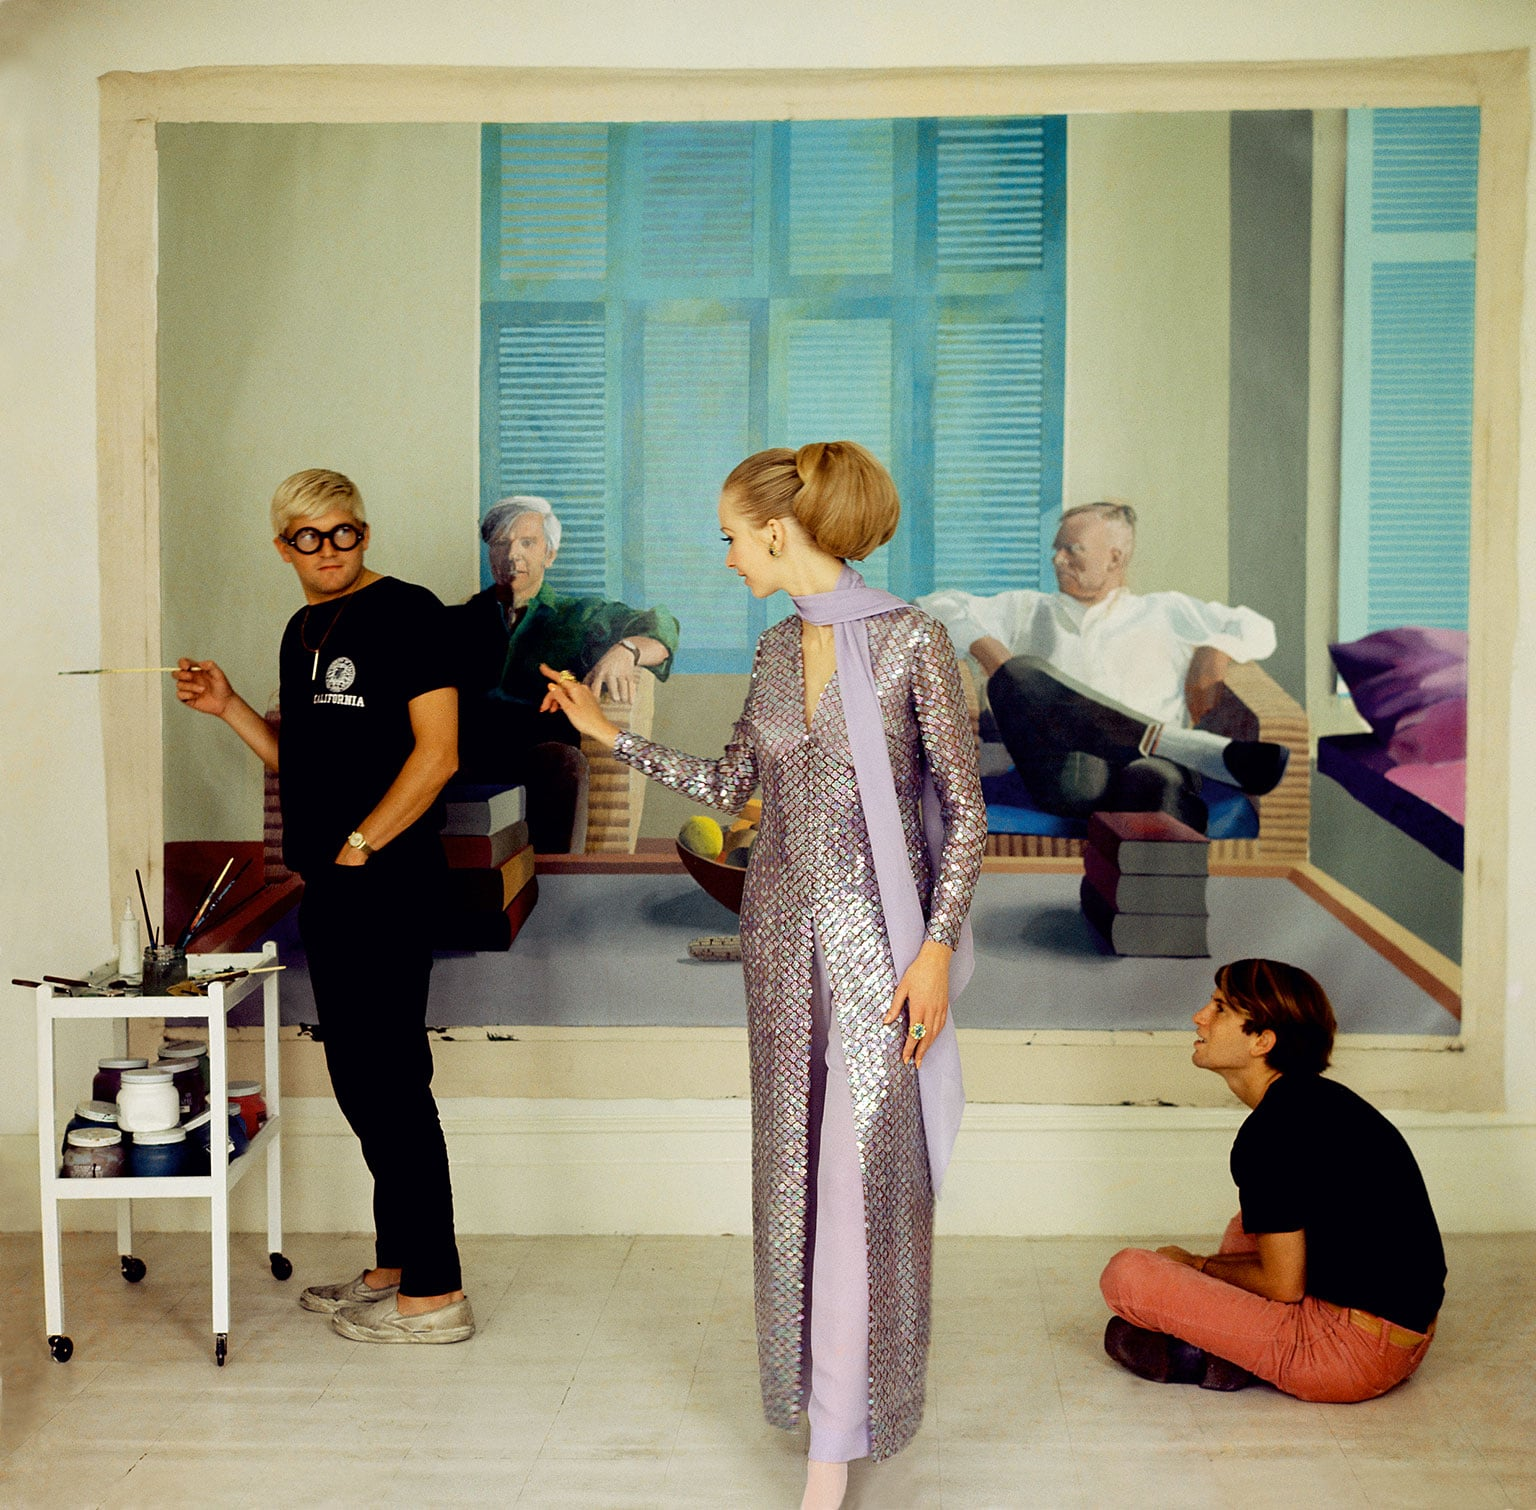 2. Vogue 100: A Century of Style, National Portrait Gallery 50% off with a National Art Pass - Cecil Beaton, David Hockney, Peter Schlesinger and Maudie James, 1968. © The Condé Nast Publications Ltd